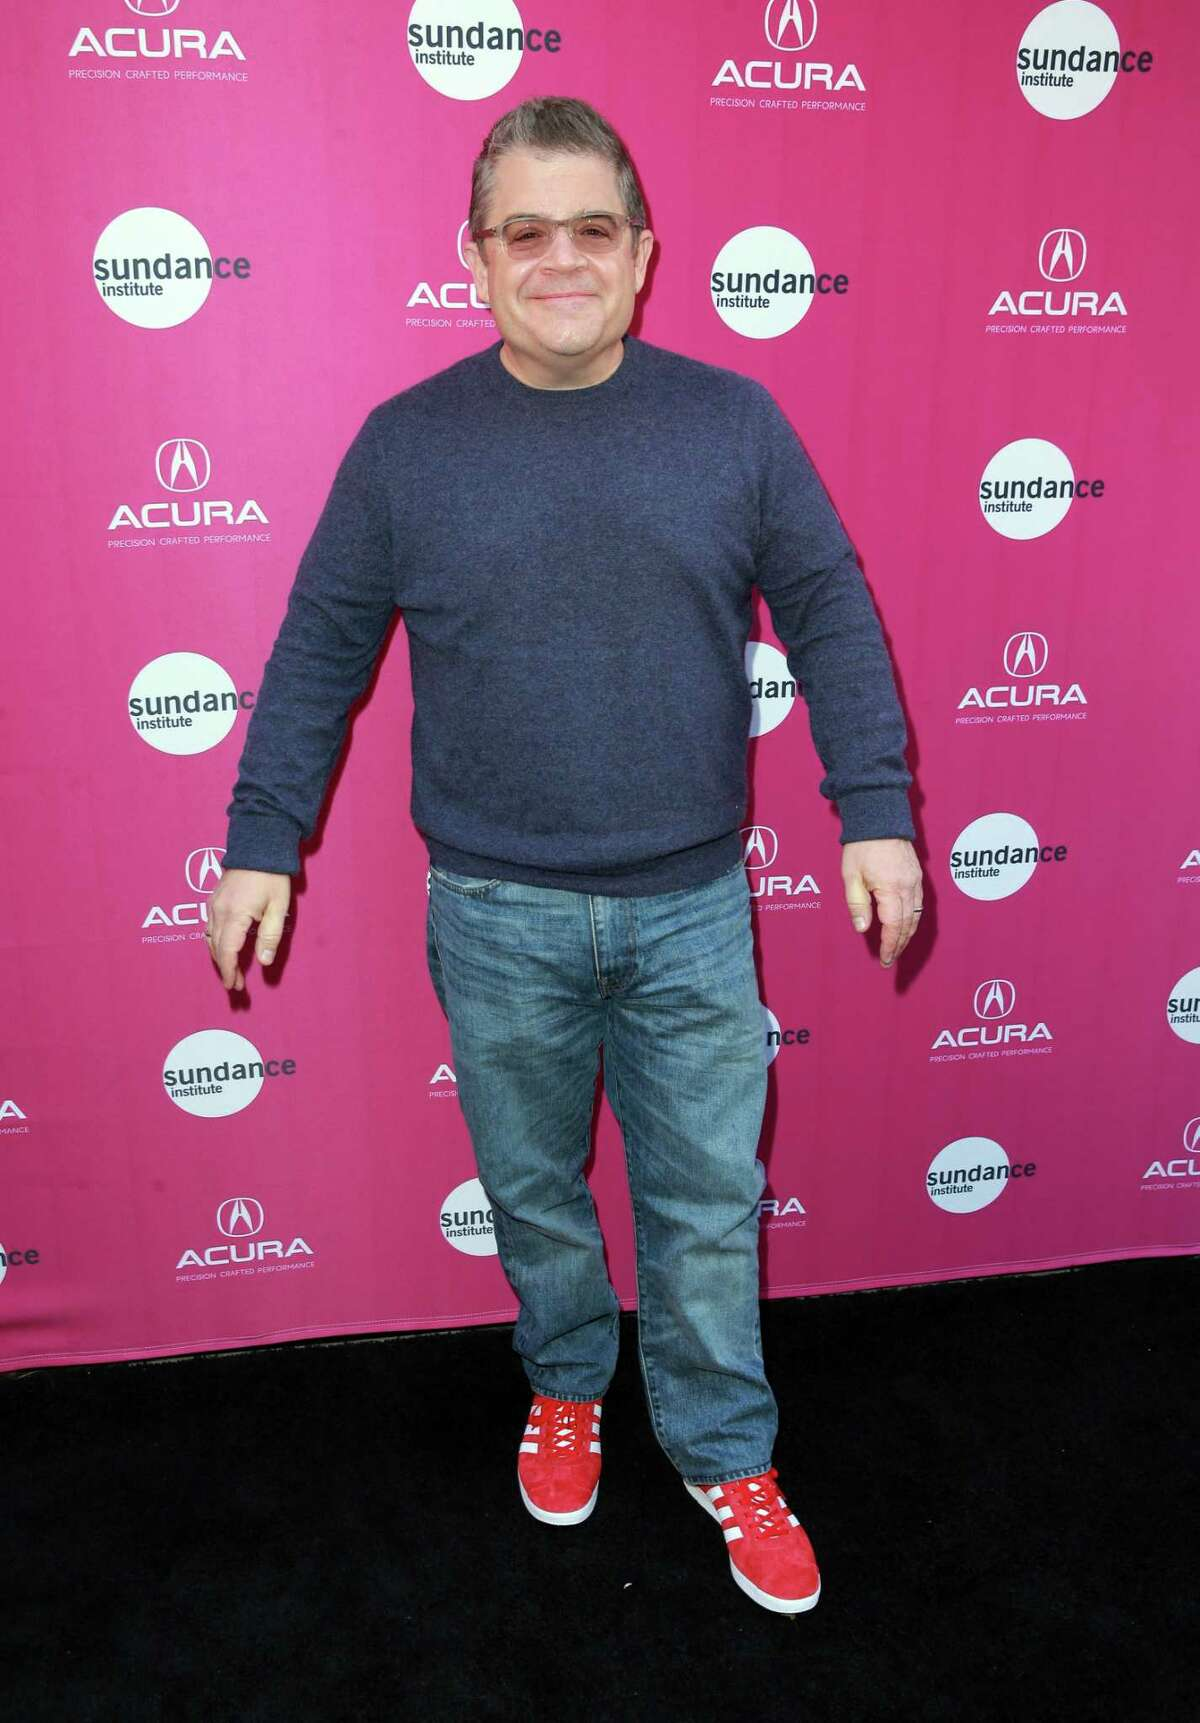 Patton Oswalt attends the Sundance Institute at Sundown Summer Benefit at the Ace Hotel on June 14, 2018 in Los Angeles, California.